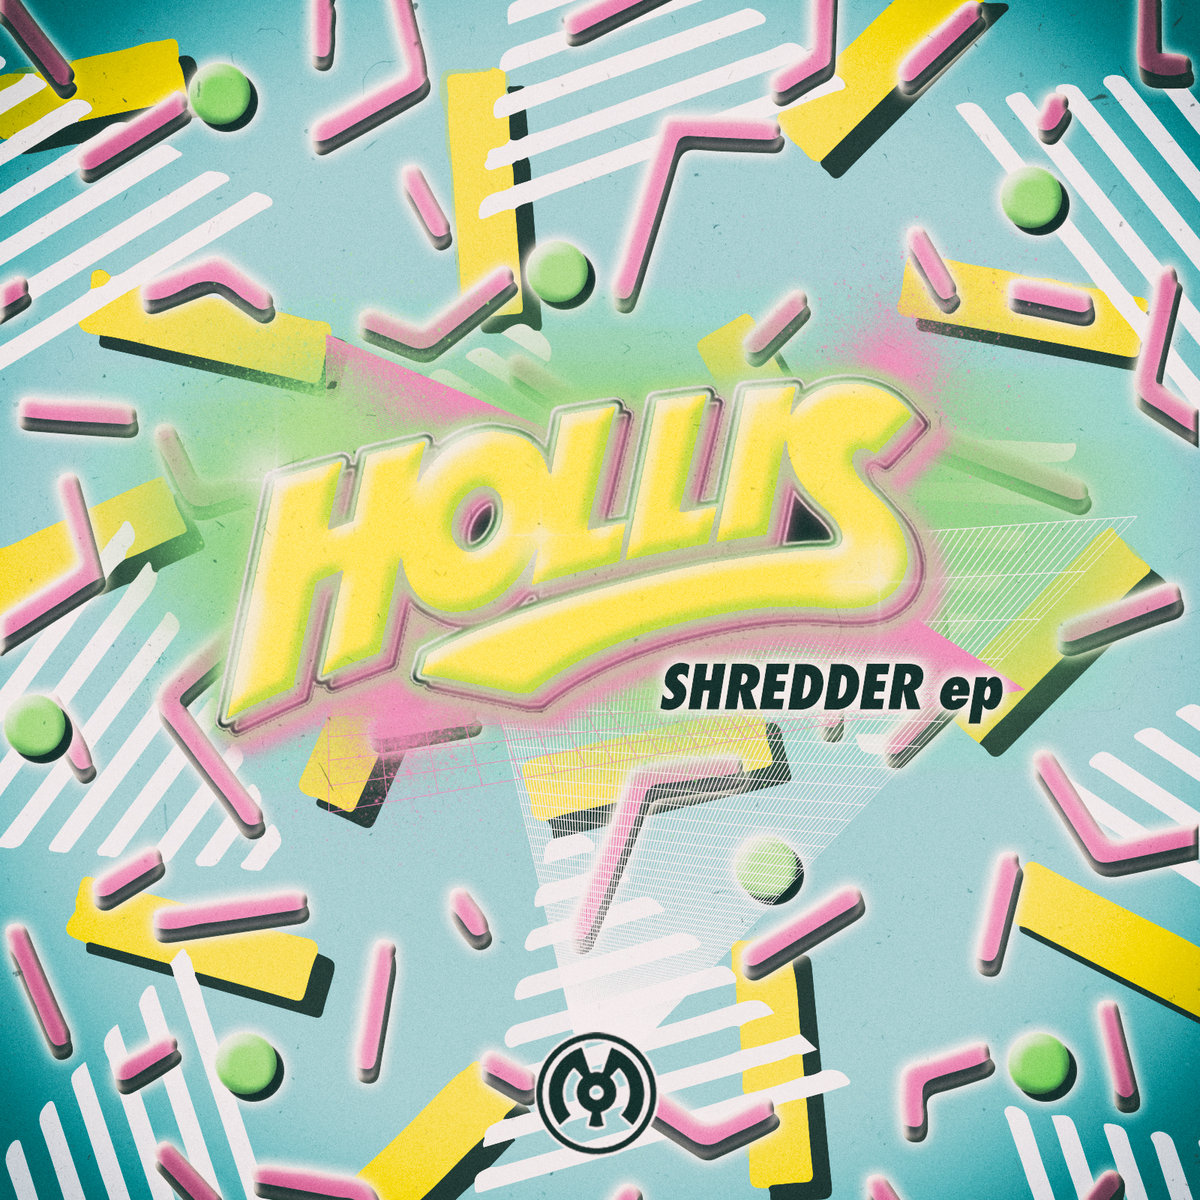 Hollis - Shredder EP (artwork)